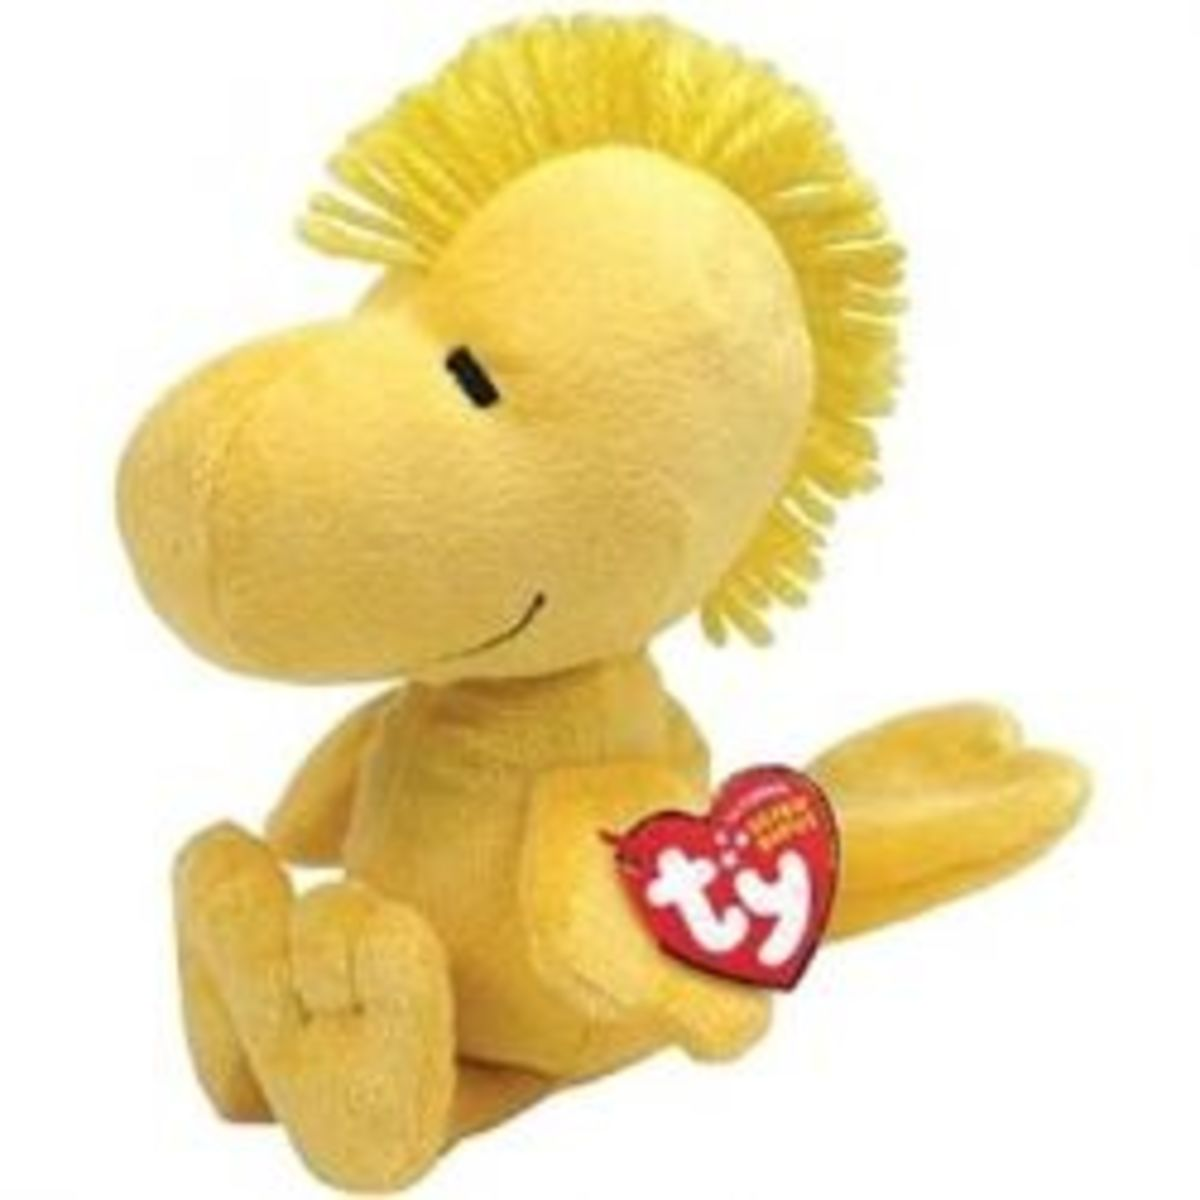 Collectors Beware - 17 Ways to Determine If a Beanie Baby is Counterfeit